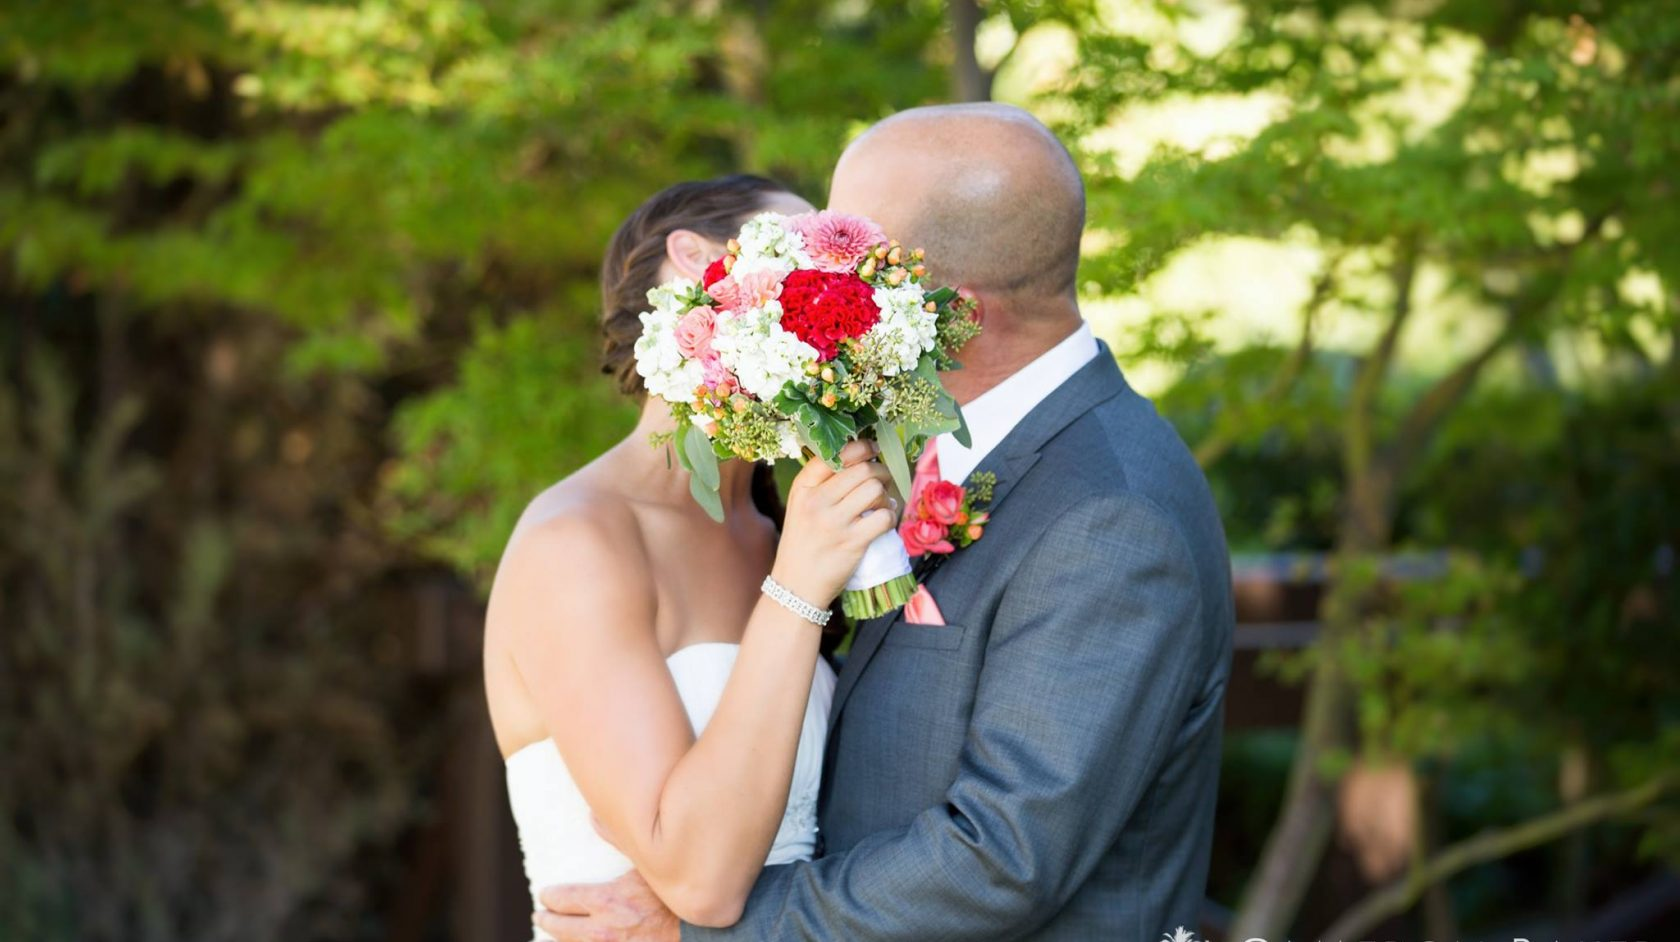 Newlyweds share a kiss behind the bouquet